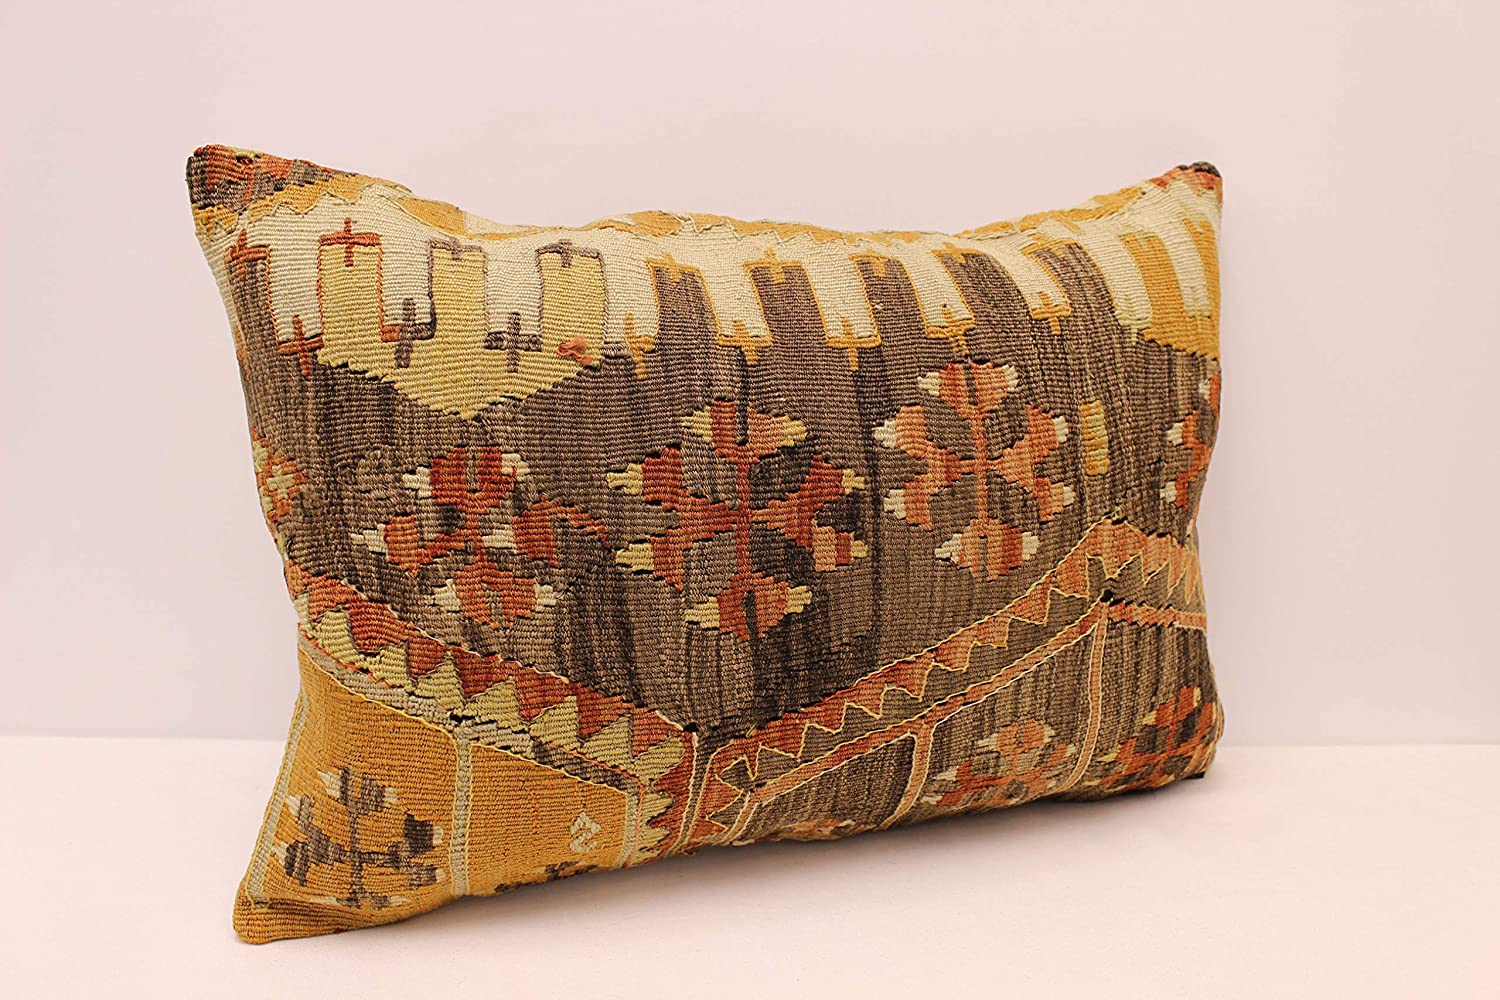 Max 61% OFF Handmade Lumbar Pillow Cover 16x24 inches Sofa Red P Green Cheap super special price Black